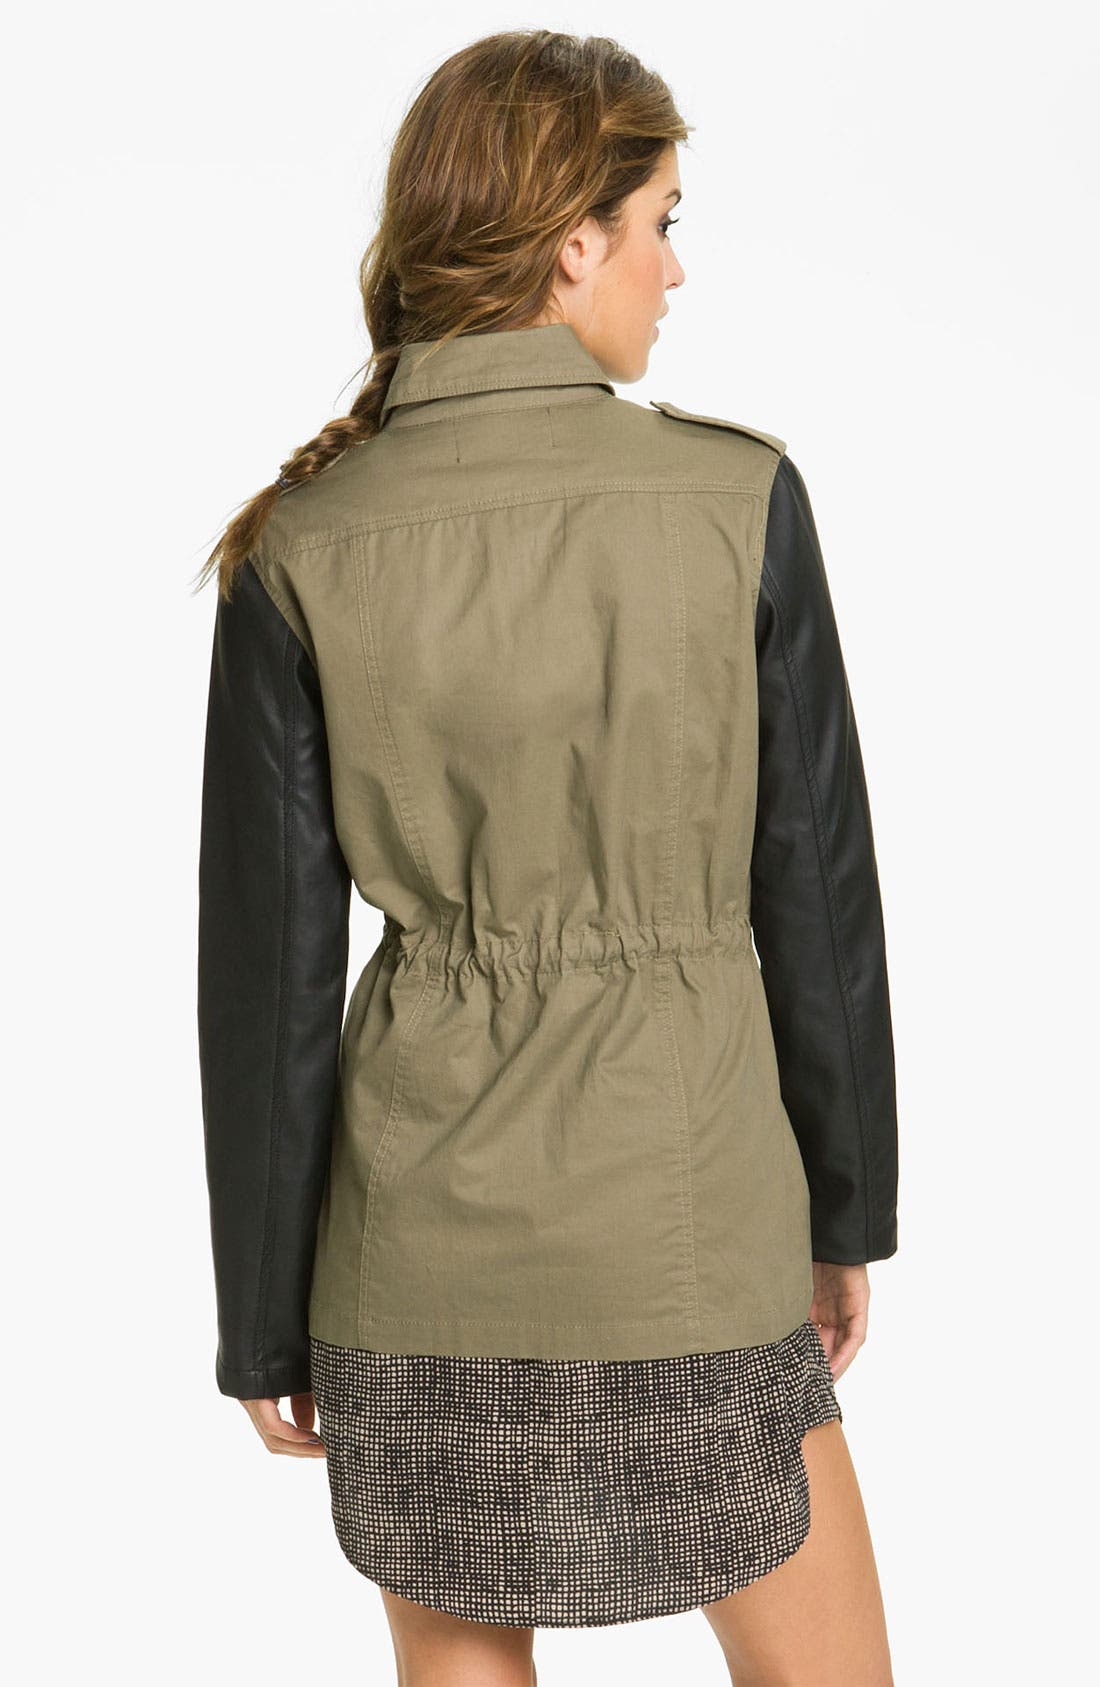 BLU PEPPER,                             Faux Leather Sleeve Utility Jacket,                             Alternate thumbnail 4, color,                             331